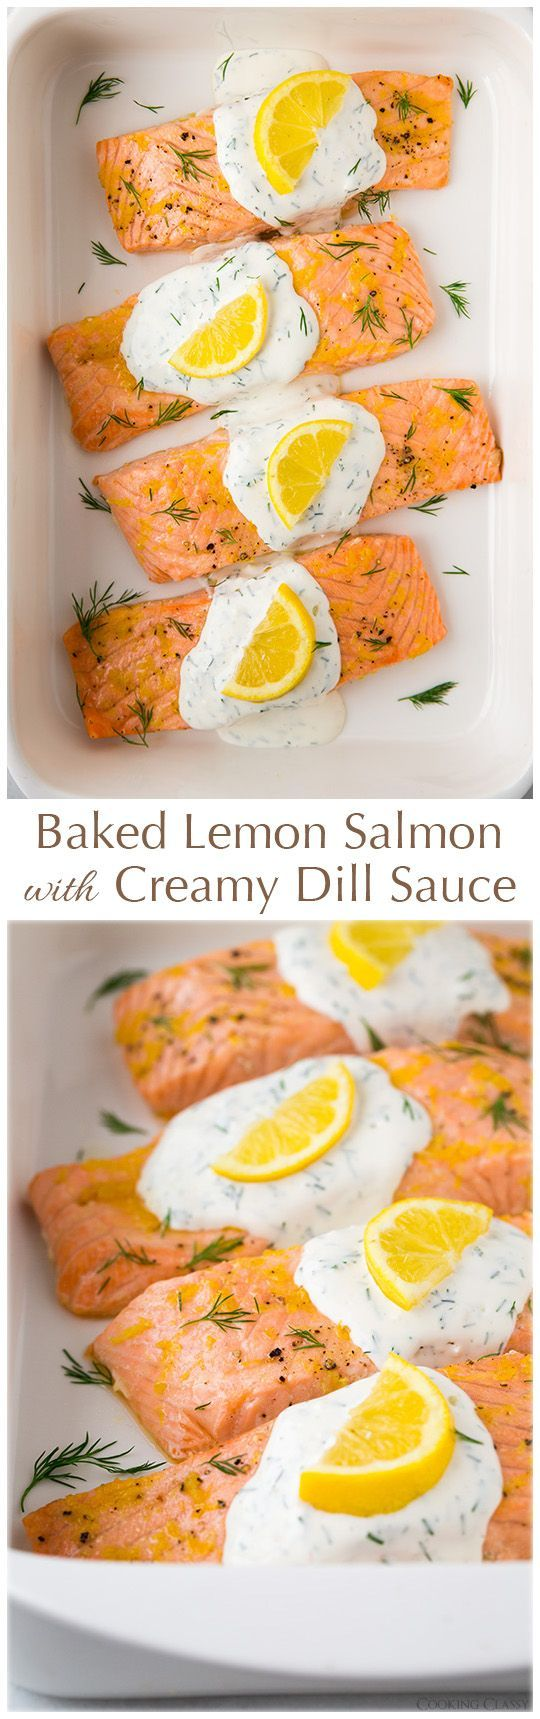 Baked Lemon Salmon with Creamy Dill Sauce - this salmon is AWESOME and it's totally healthy!